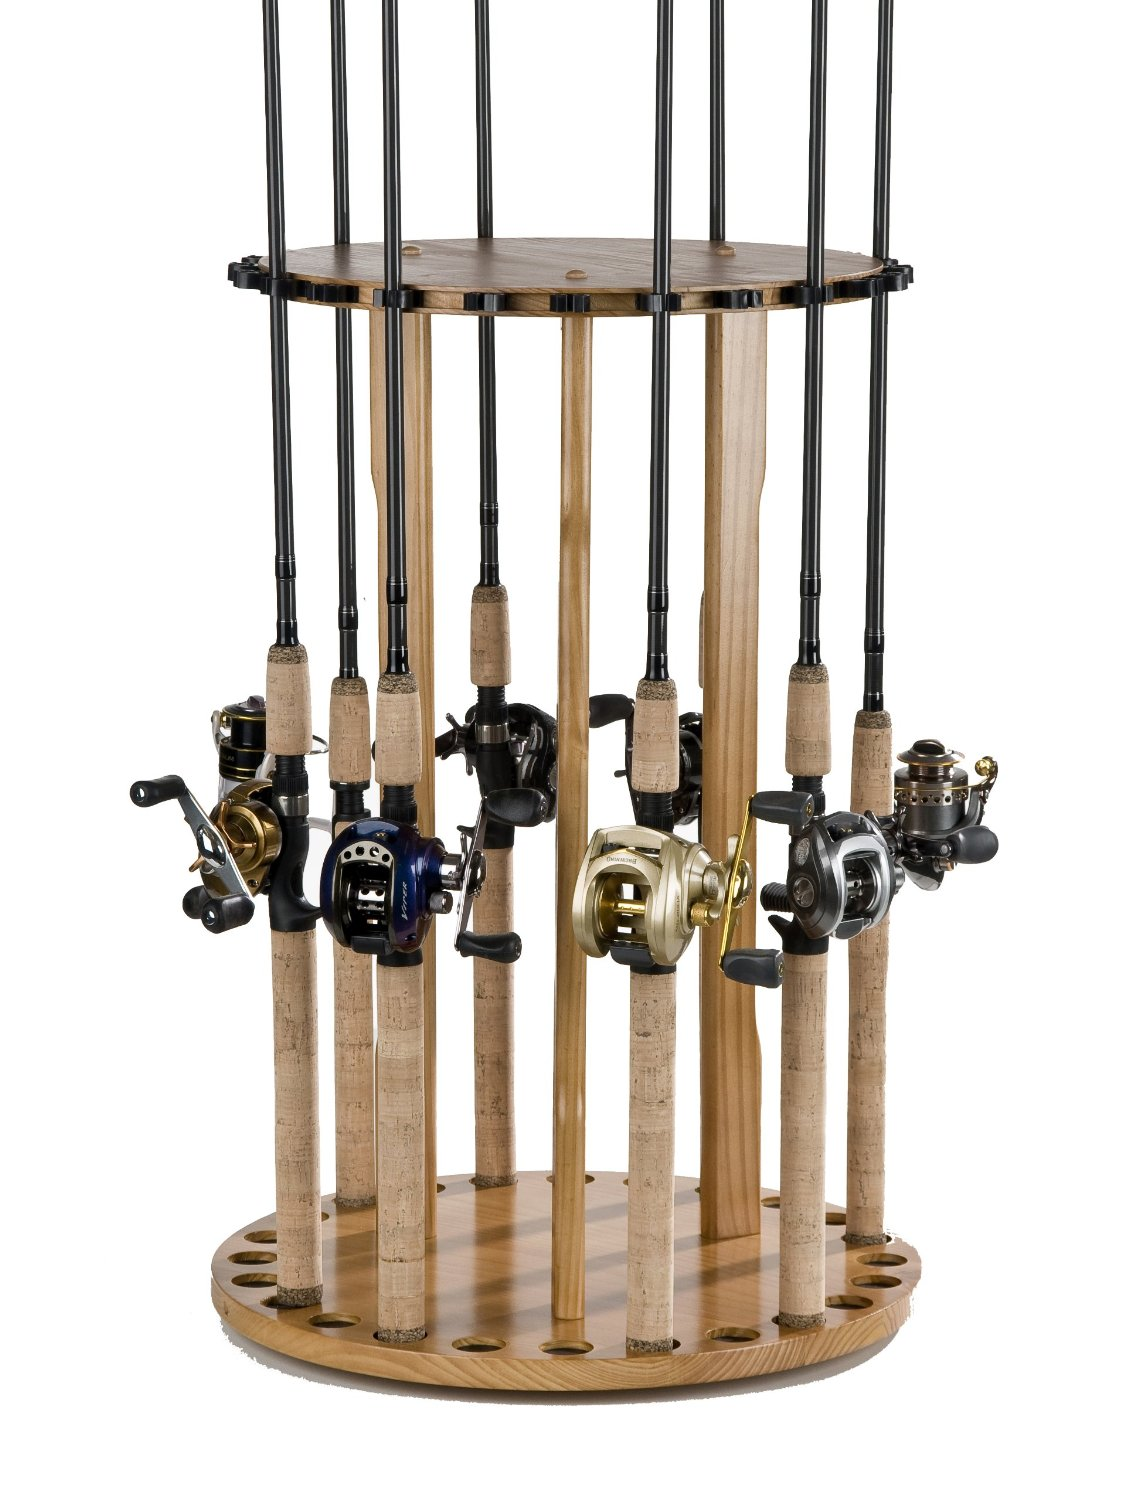 How to make fishing rod racks 2 fishing rod rack for Diy fishing pole rack